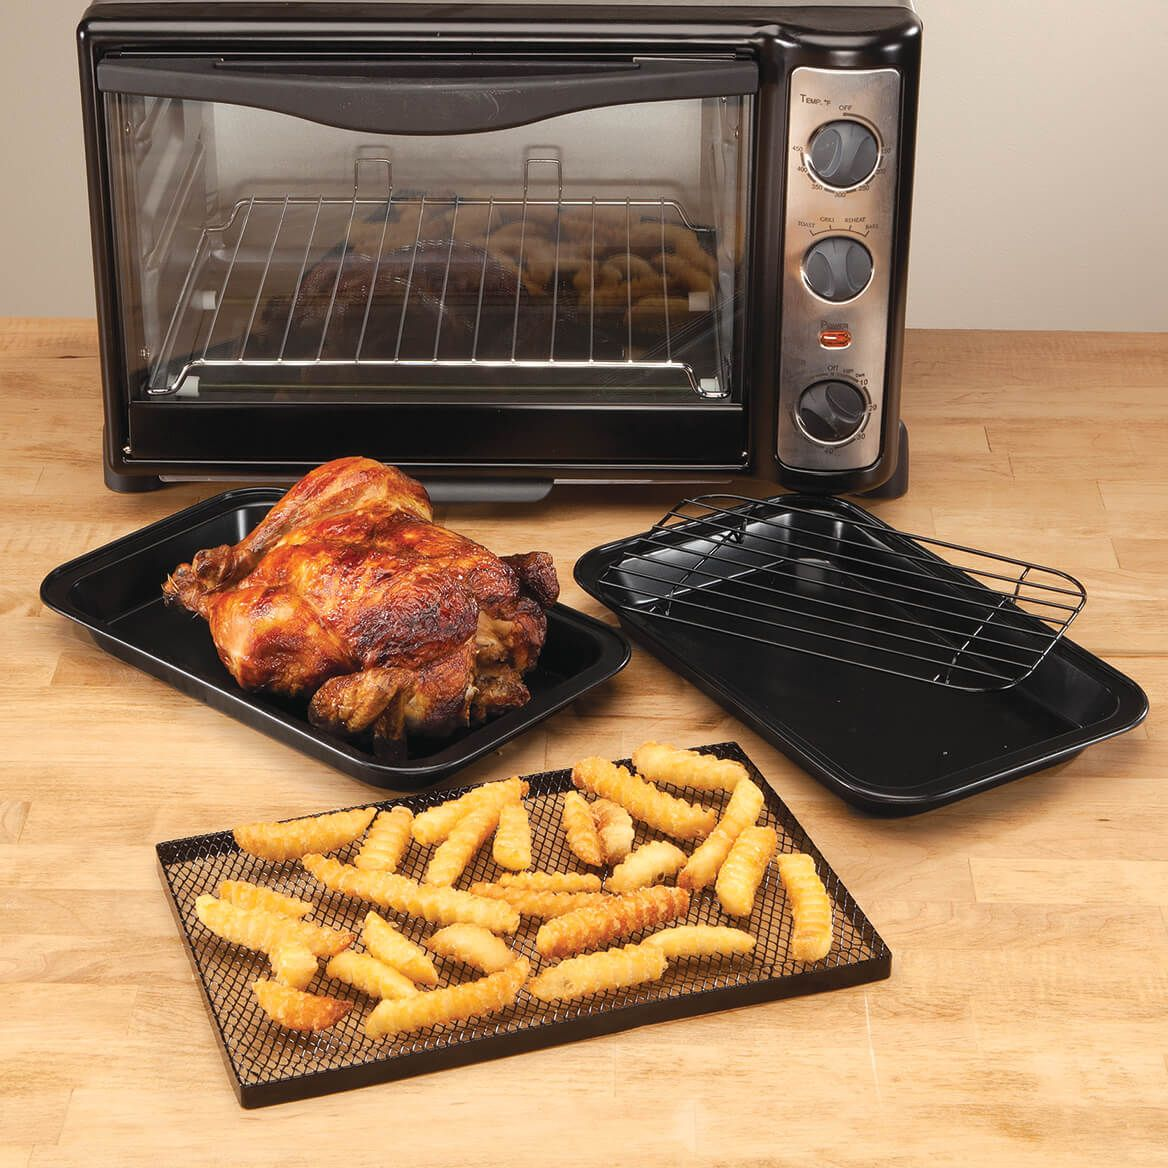 Toaster Oven Pans by Home-Style Kitchen ™ - Set of 3-354275